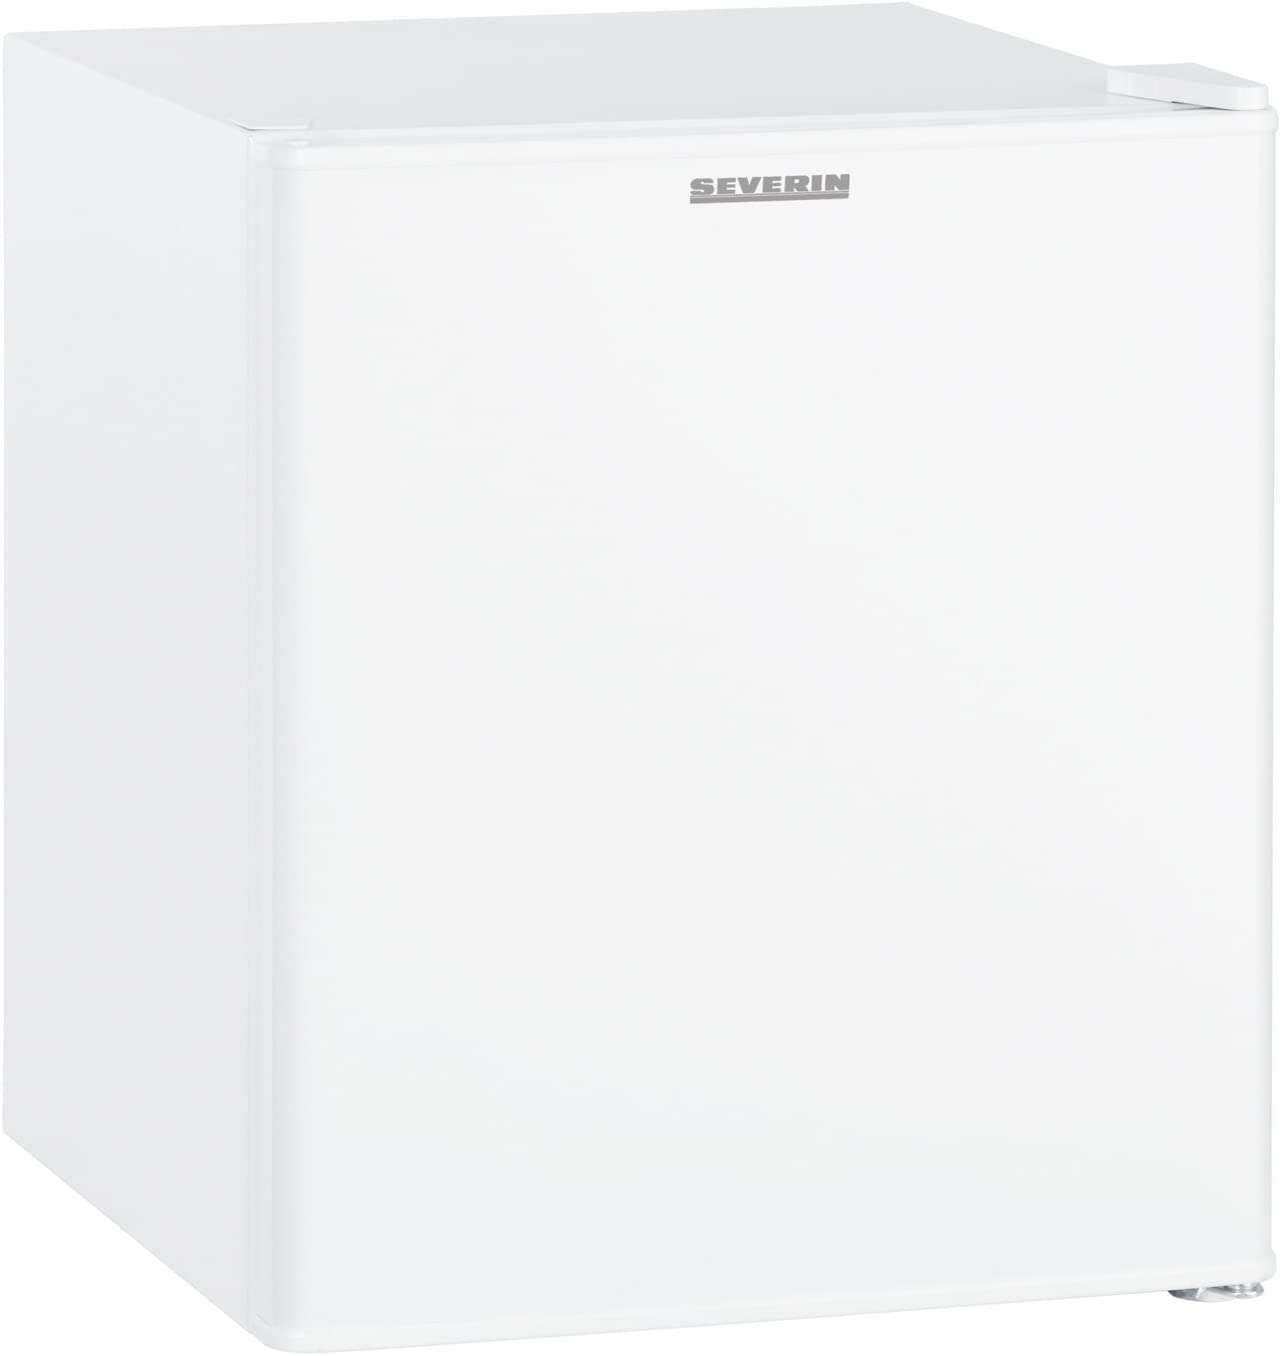 Severin KS 9807 Mini-Congelador, 30 L, Blanco: Amazon.es: Grandes ...